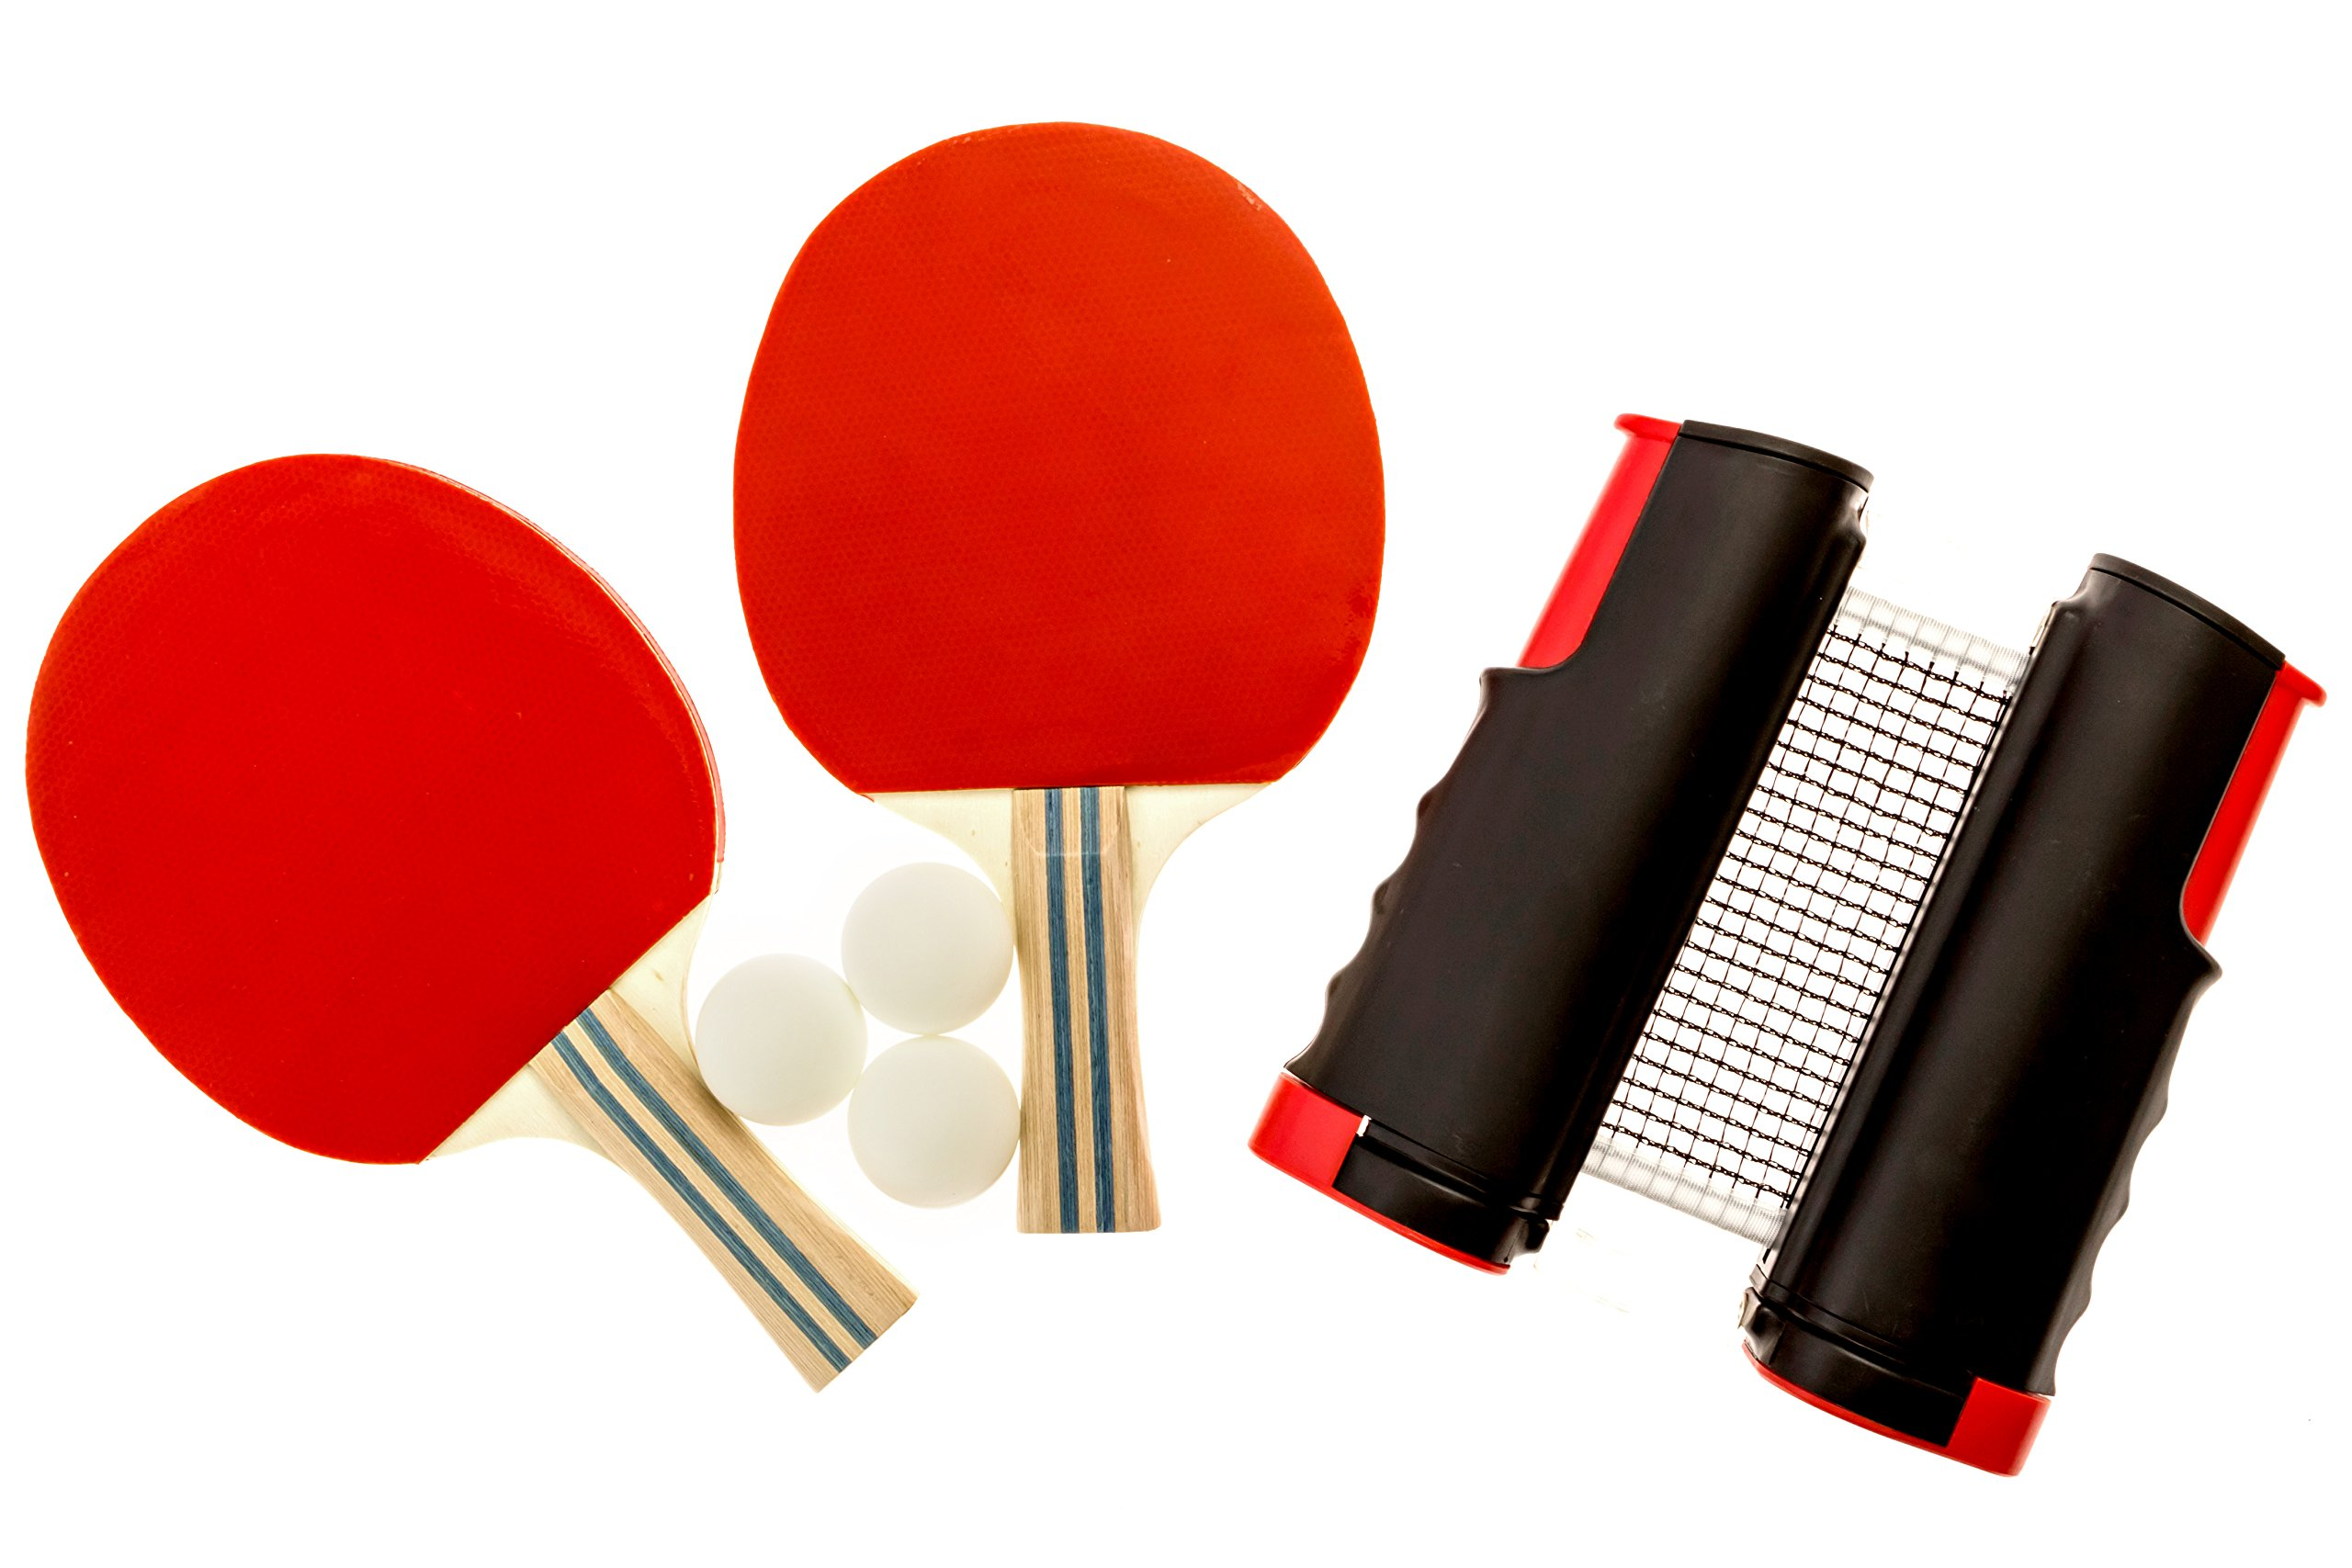 Endo Sports - Table Tennis Set - Ping Pong - Paddles - Table Tennis Net - Ping Pong Balls - Ping Pong paddle Set